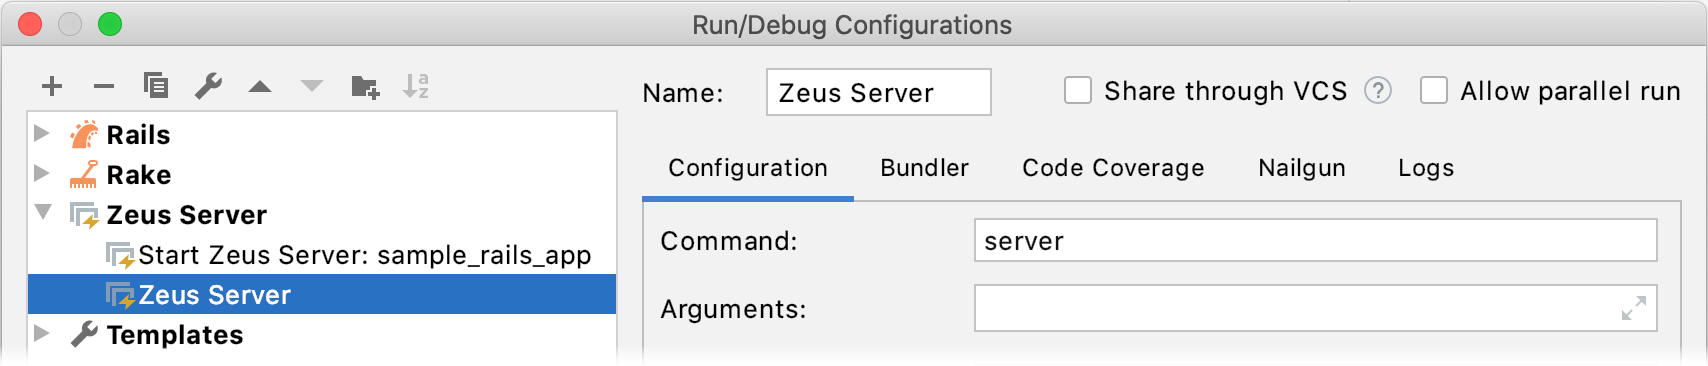 Run/Debug Configuration Zeus